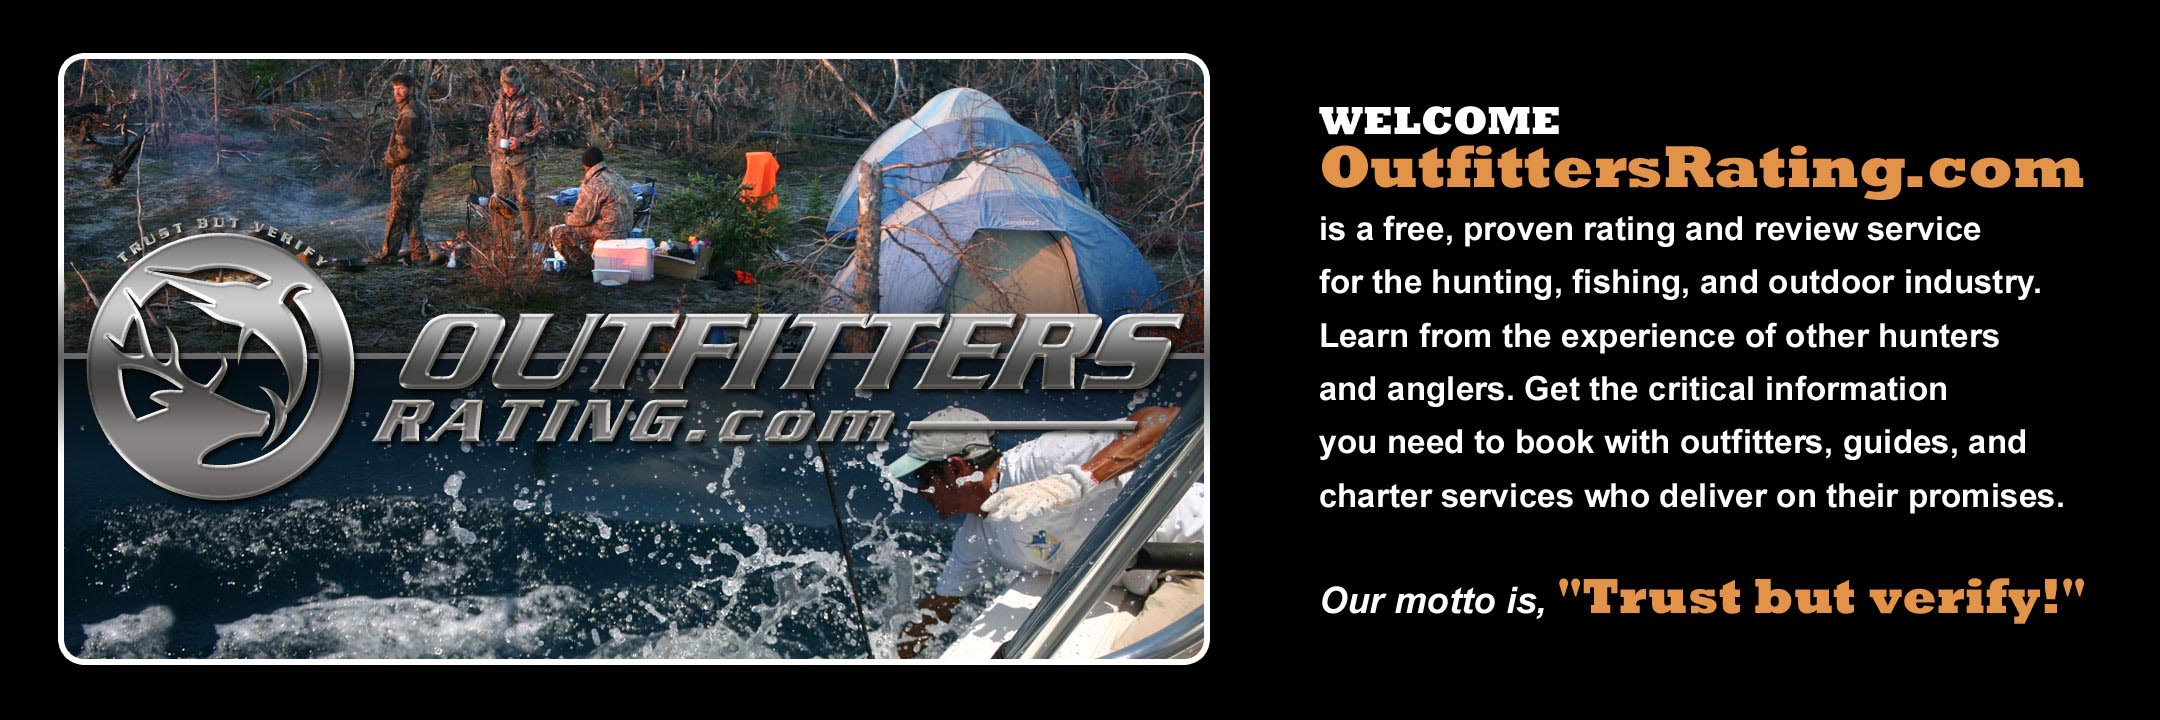 "Welcome, OutfittersRating.com is a free, proven rating and review service for the hunting, fishing, and outdoor industry. Learn from the experience of other hunters and anglers. Get the critical information you need to book with guides, outfitters, and charter services who deliver on their promises. Our motto is: ""Trust, but verify!"""